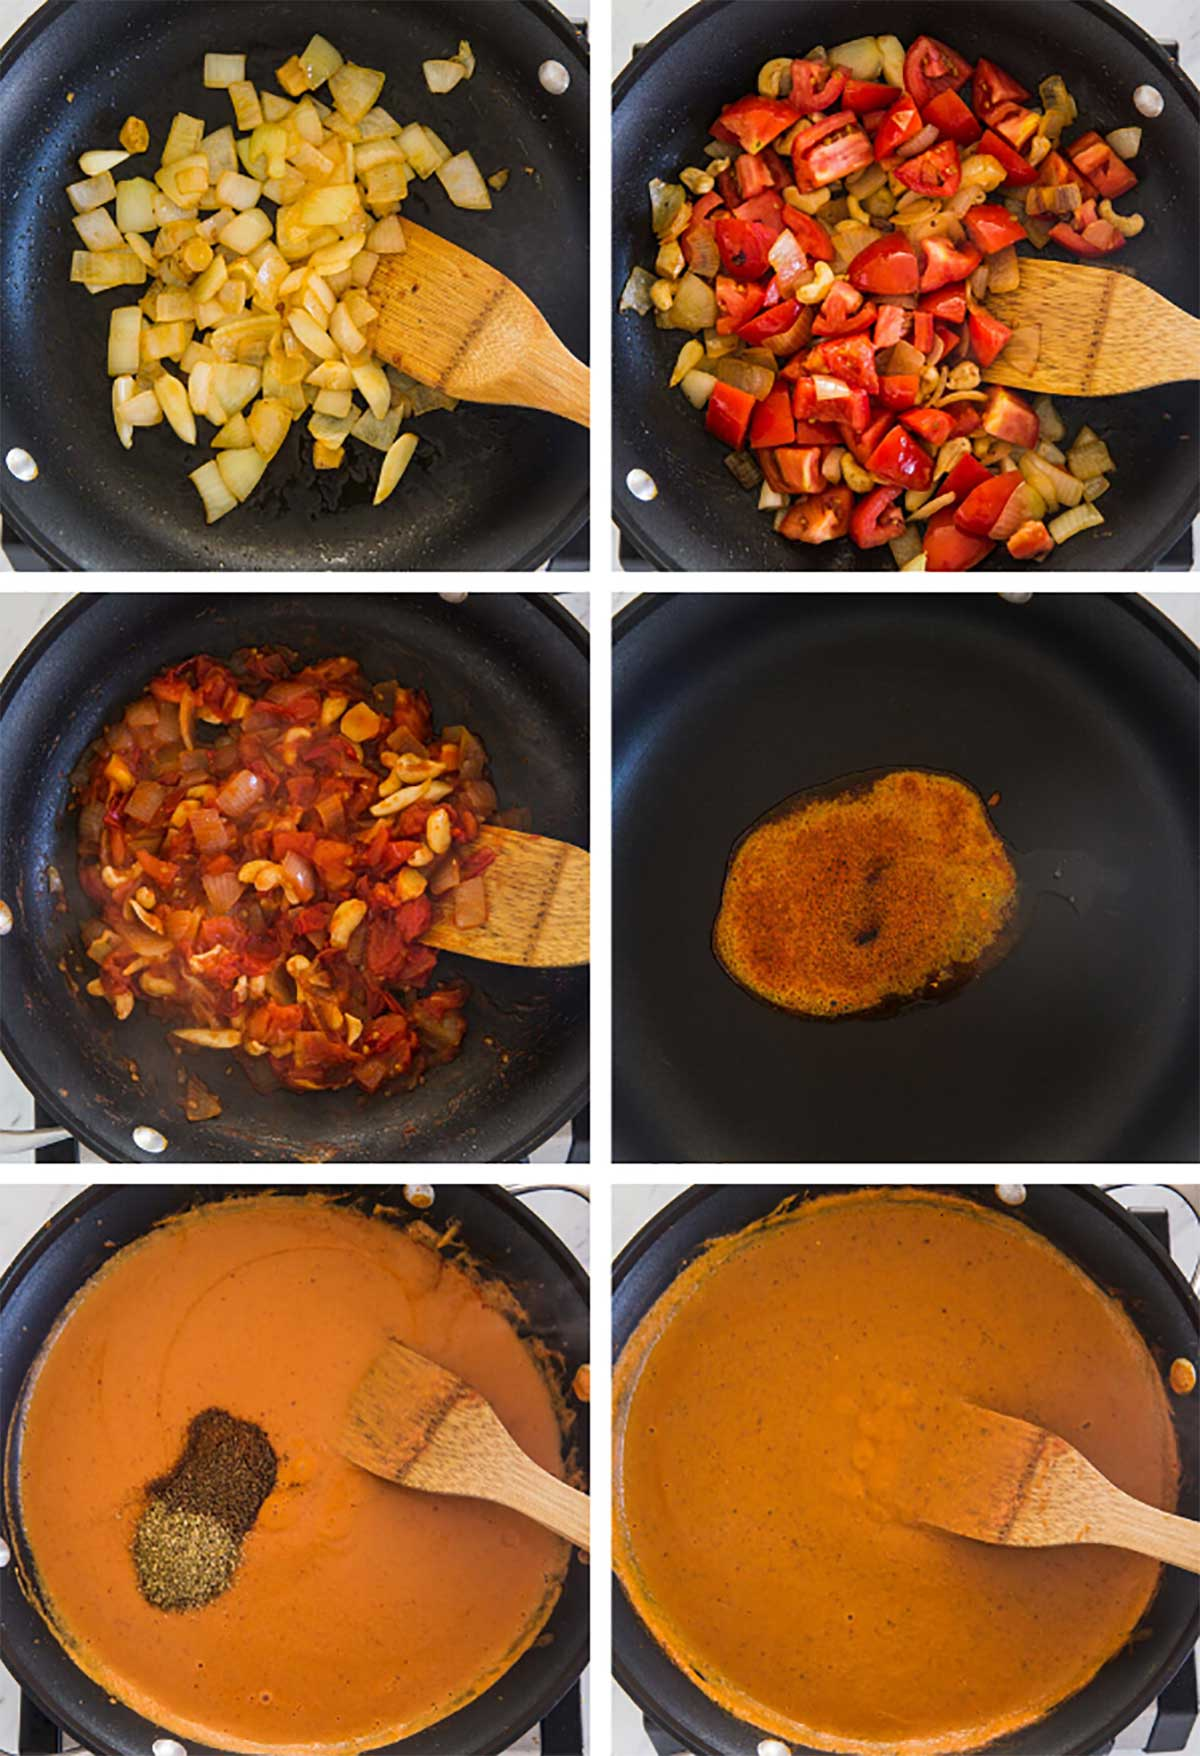 Process of making chicken tikka masala in a large skillet